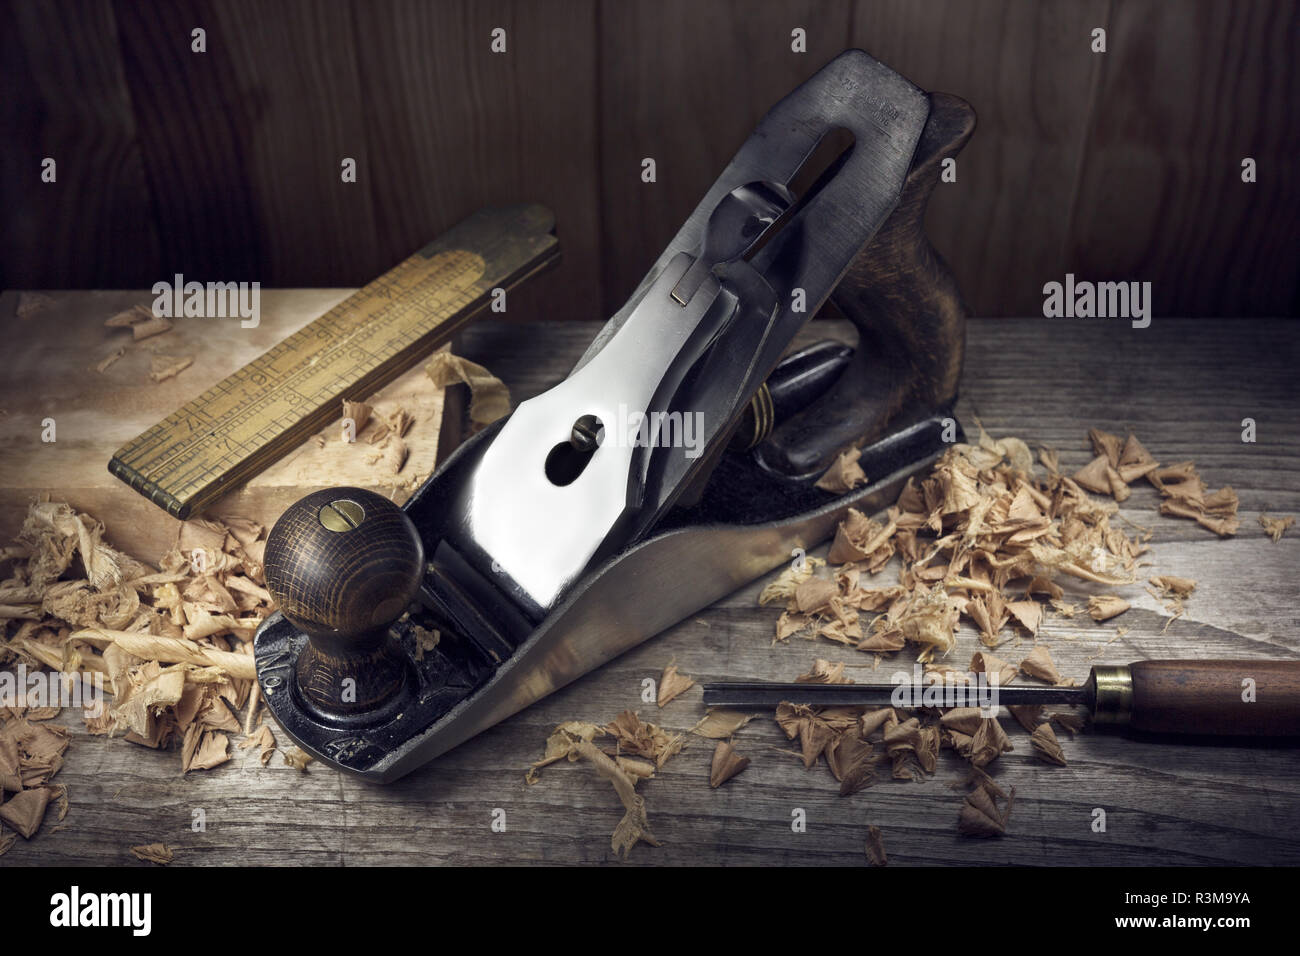 Woodworking Hand Tools Wood Shavings Stock Photos Woodworking Hand